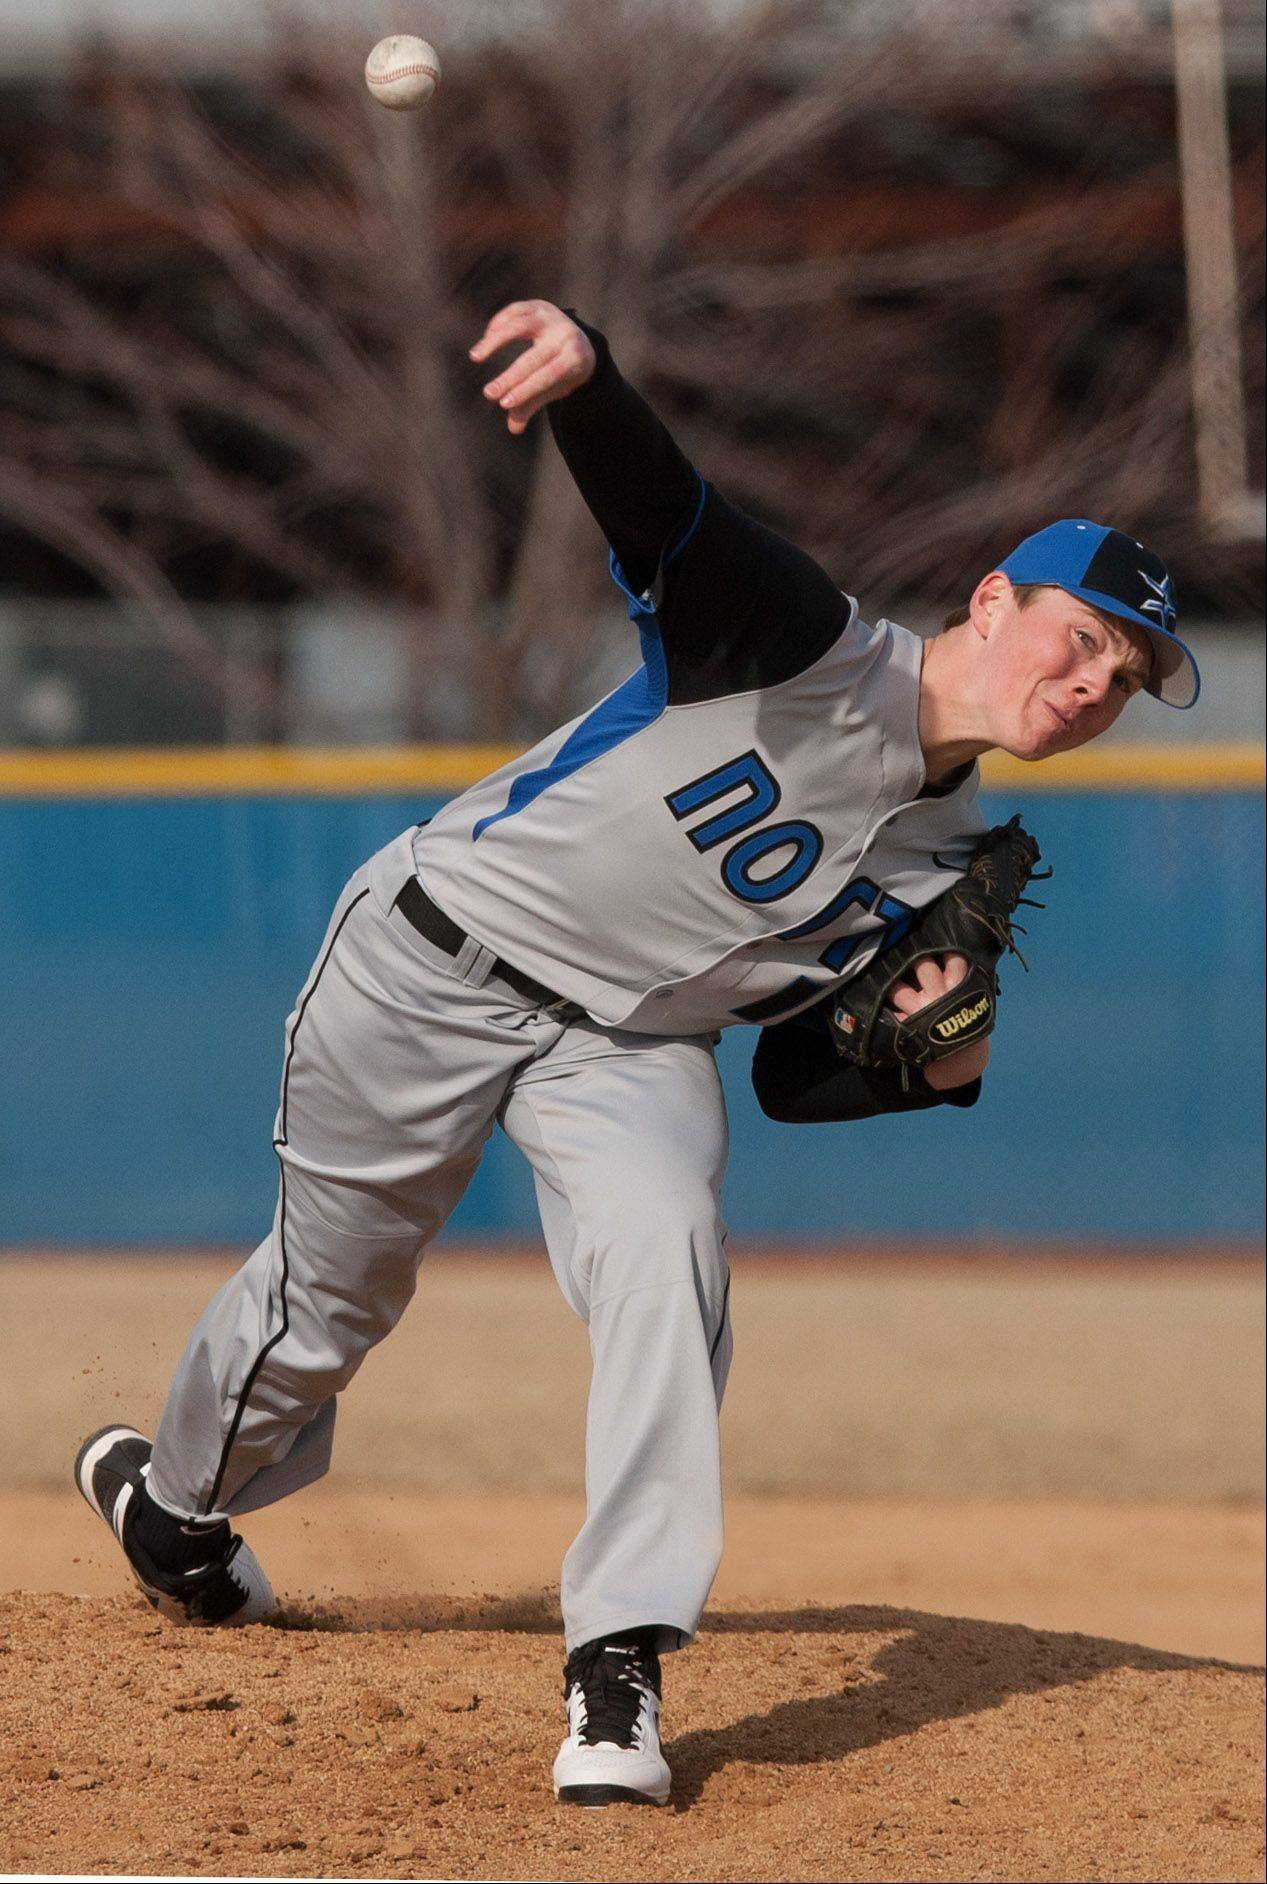 St. Charles North pitcher Sawyer Chambers delivers a pitch against Neuqua Valley, during boys baseball action in Naperville.